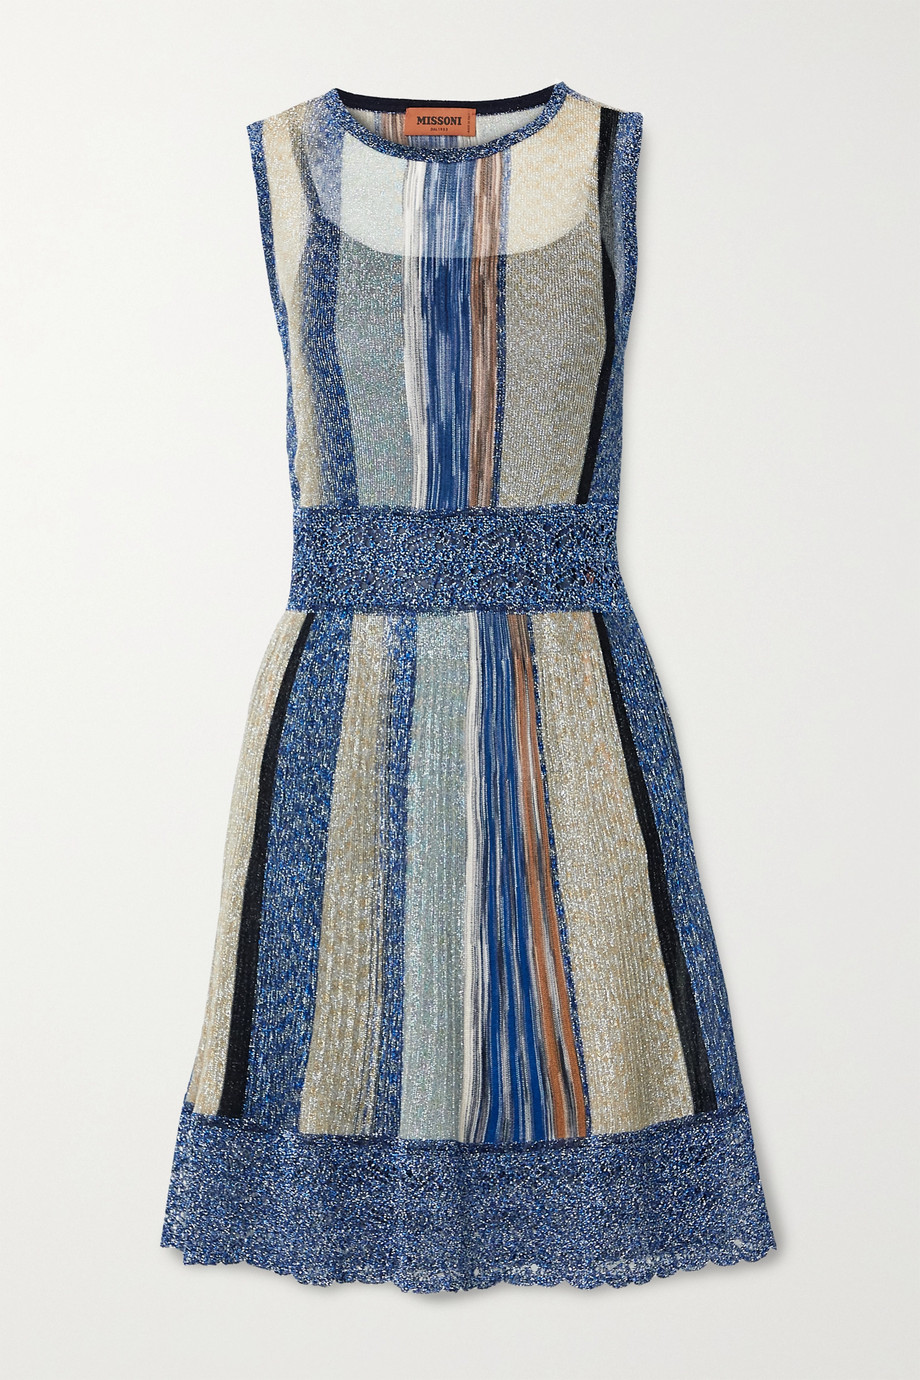 Missoni Striped metallic crochet-knit mini dress